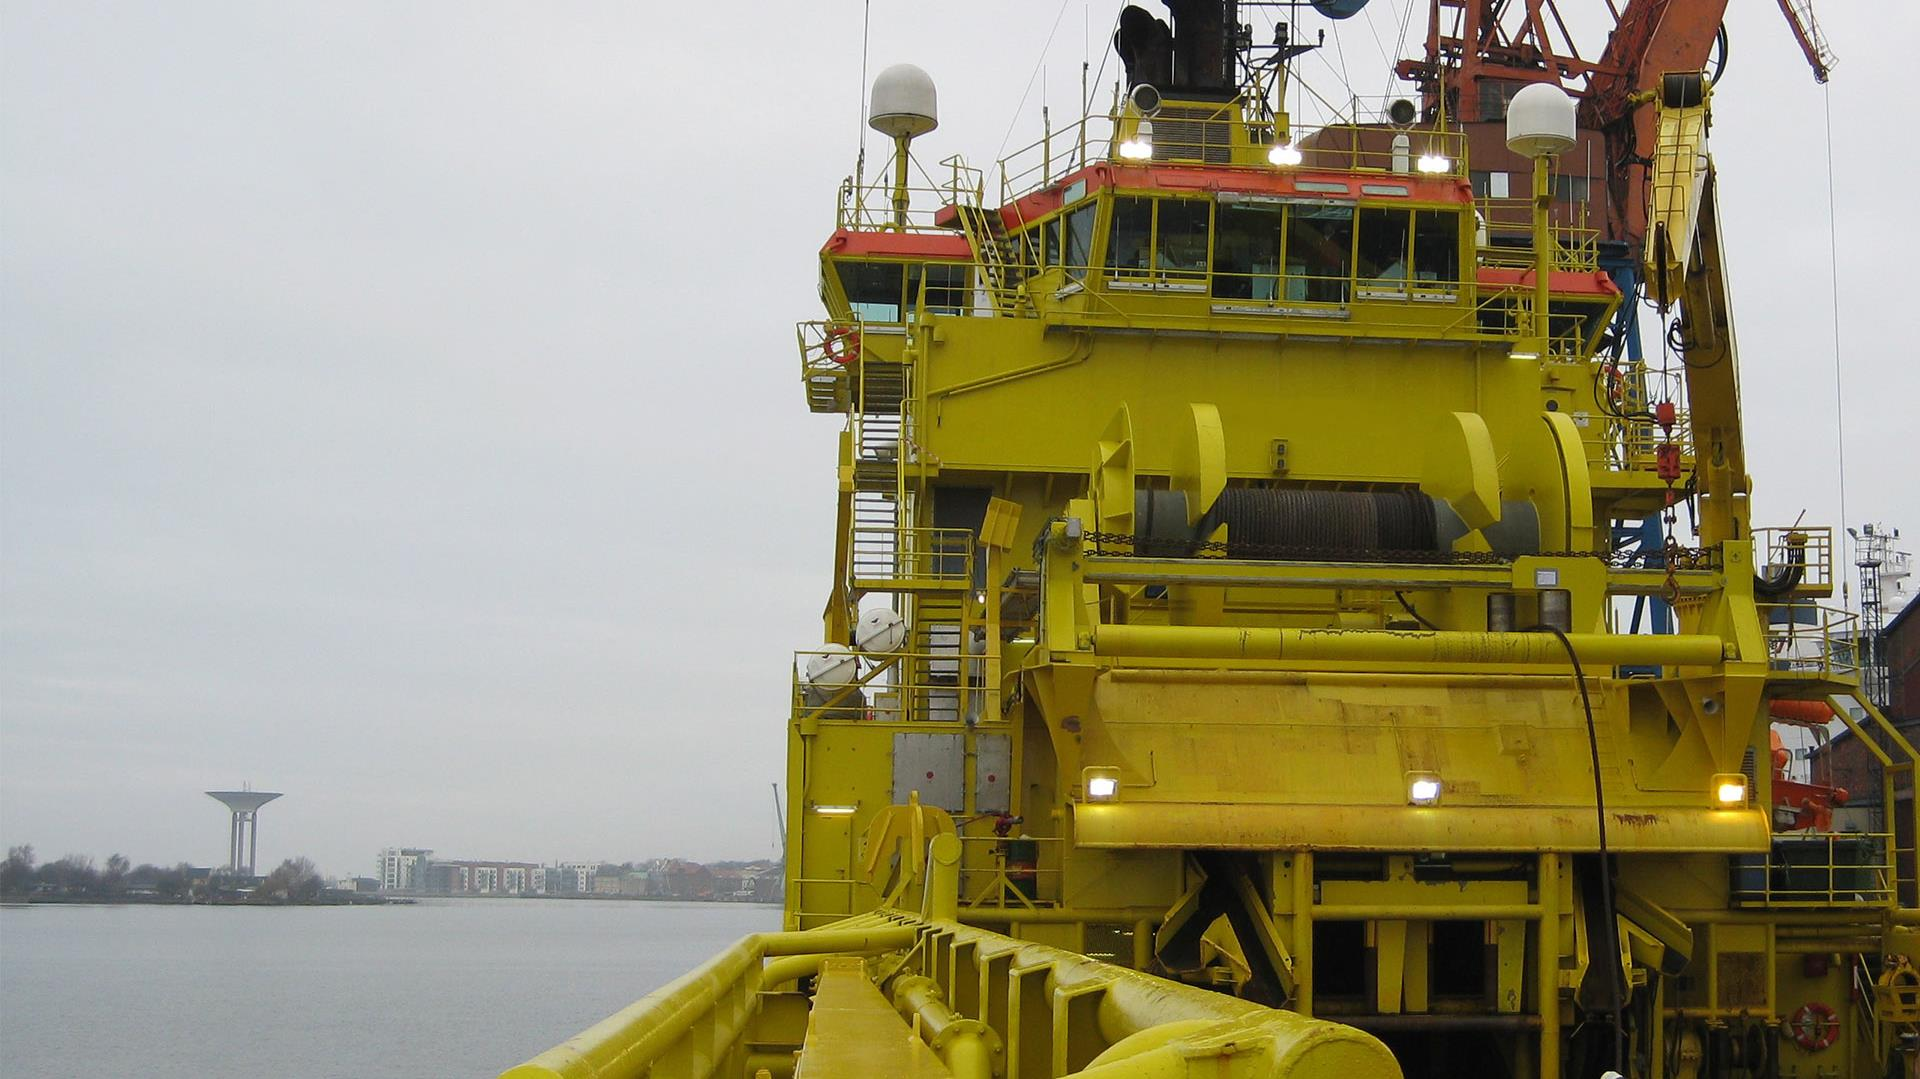 Anchor handling and towing winch on mobile offshore unit (MOU)